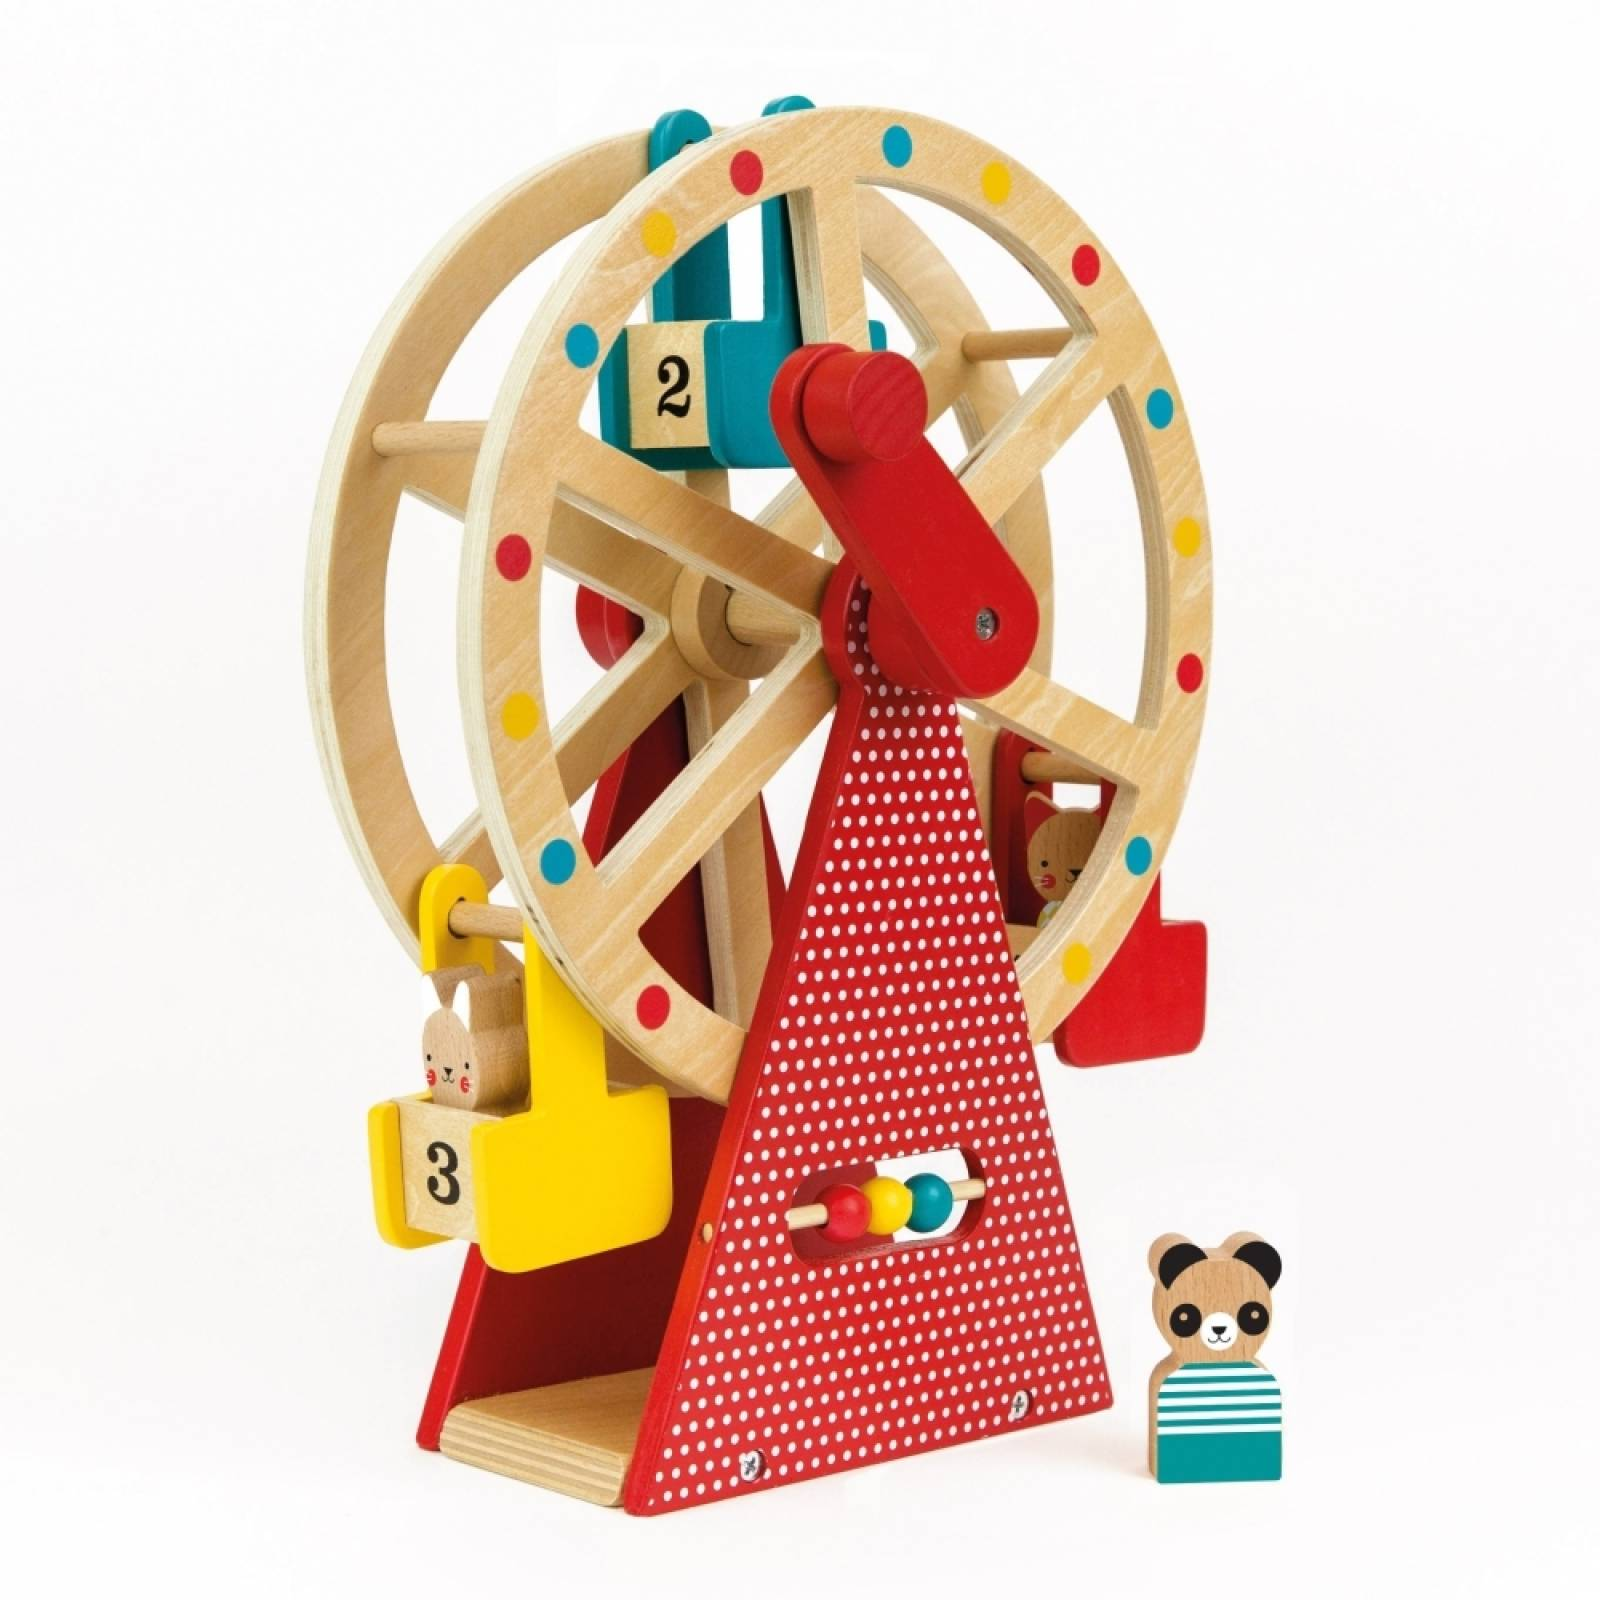 Wooden Carnival Play Set Ferris Wheel Toy 3+ thumbnails